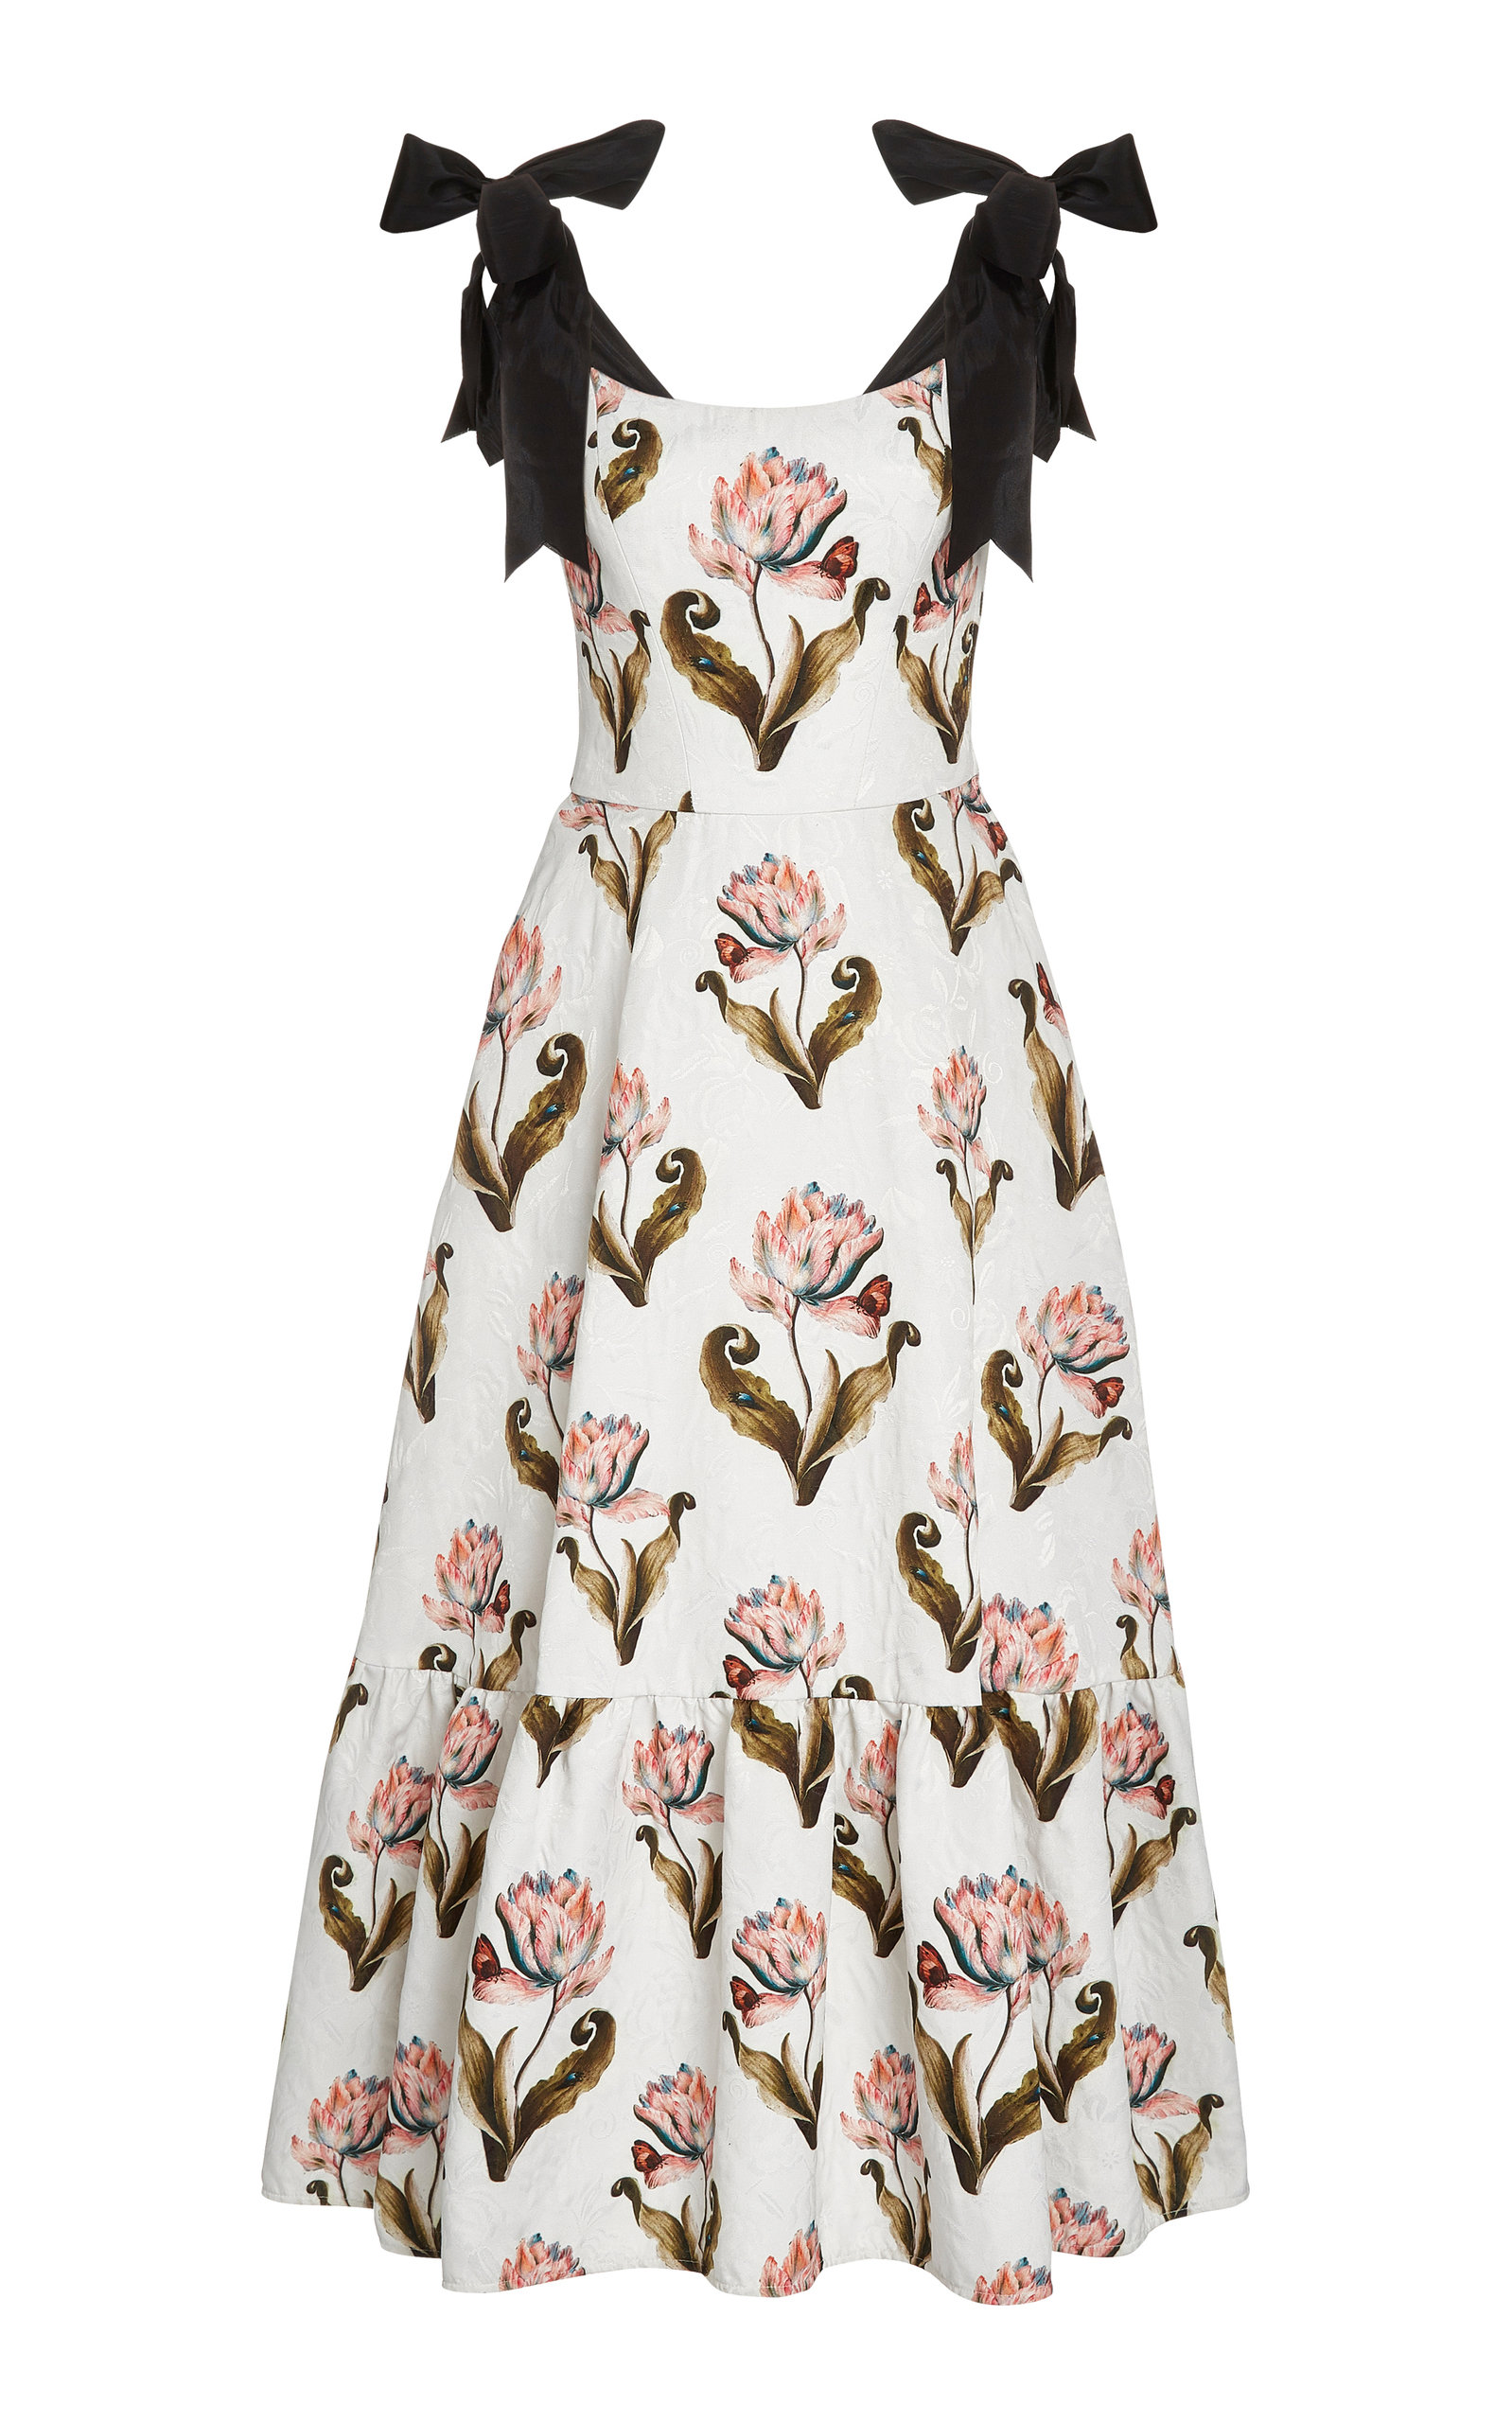 Buy Lena Hoschek Daughter Of Nature Bow-Embellished Floral-Print Maxi Dres online, shop Lena Hoschek at the best price